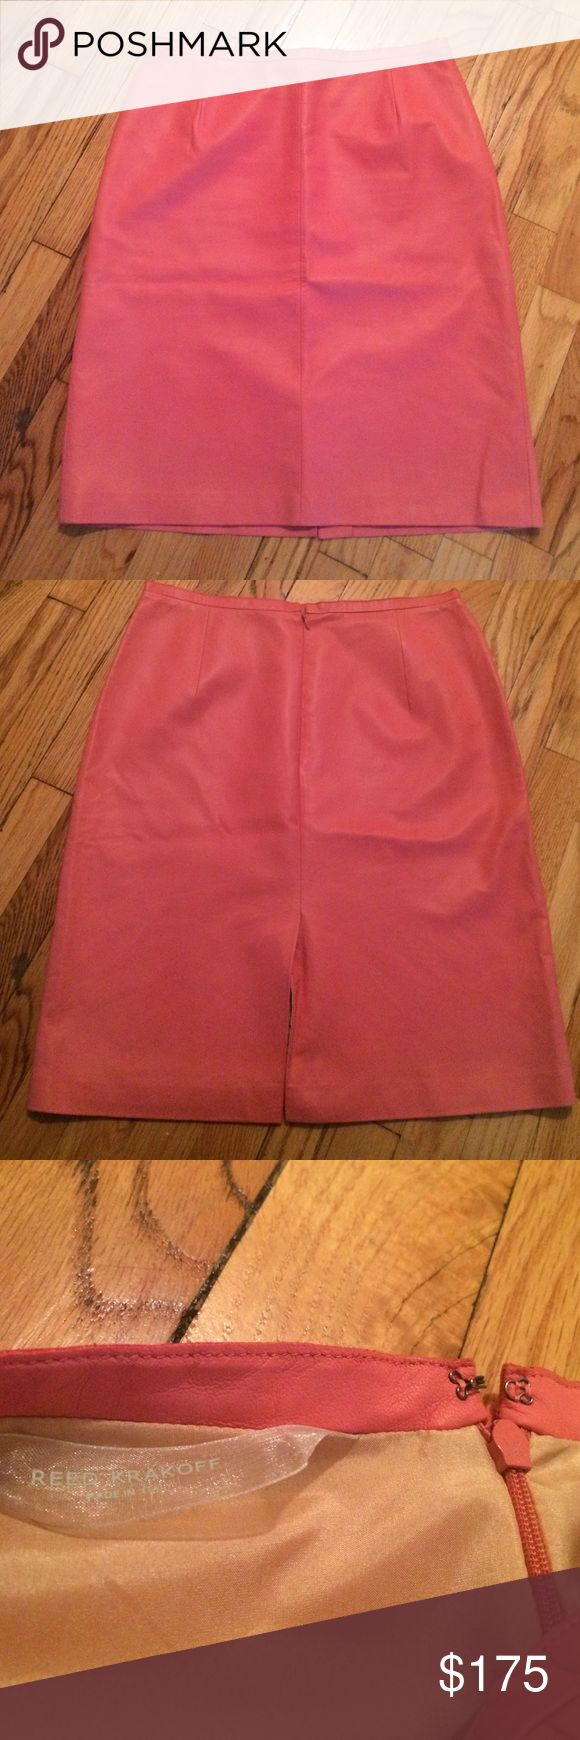 Reek Krakoff Pink Leather Pencil Skirt Reek Krakoff Pink Leather Pencil Skirt. Couple signs of wear but definitely in good condition. Hidden back zipper. Photo on model is the same skirt but in a different color. Reed Krakoff Skirts Pencil